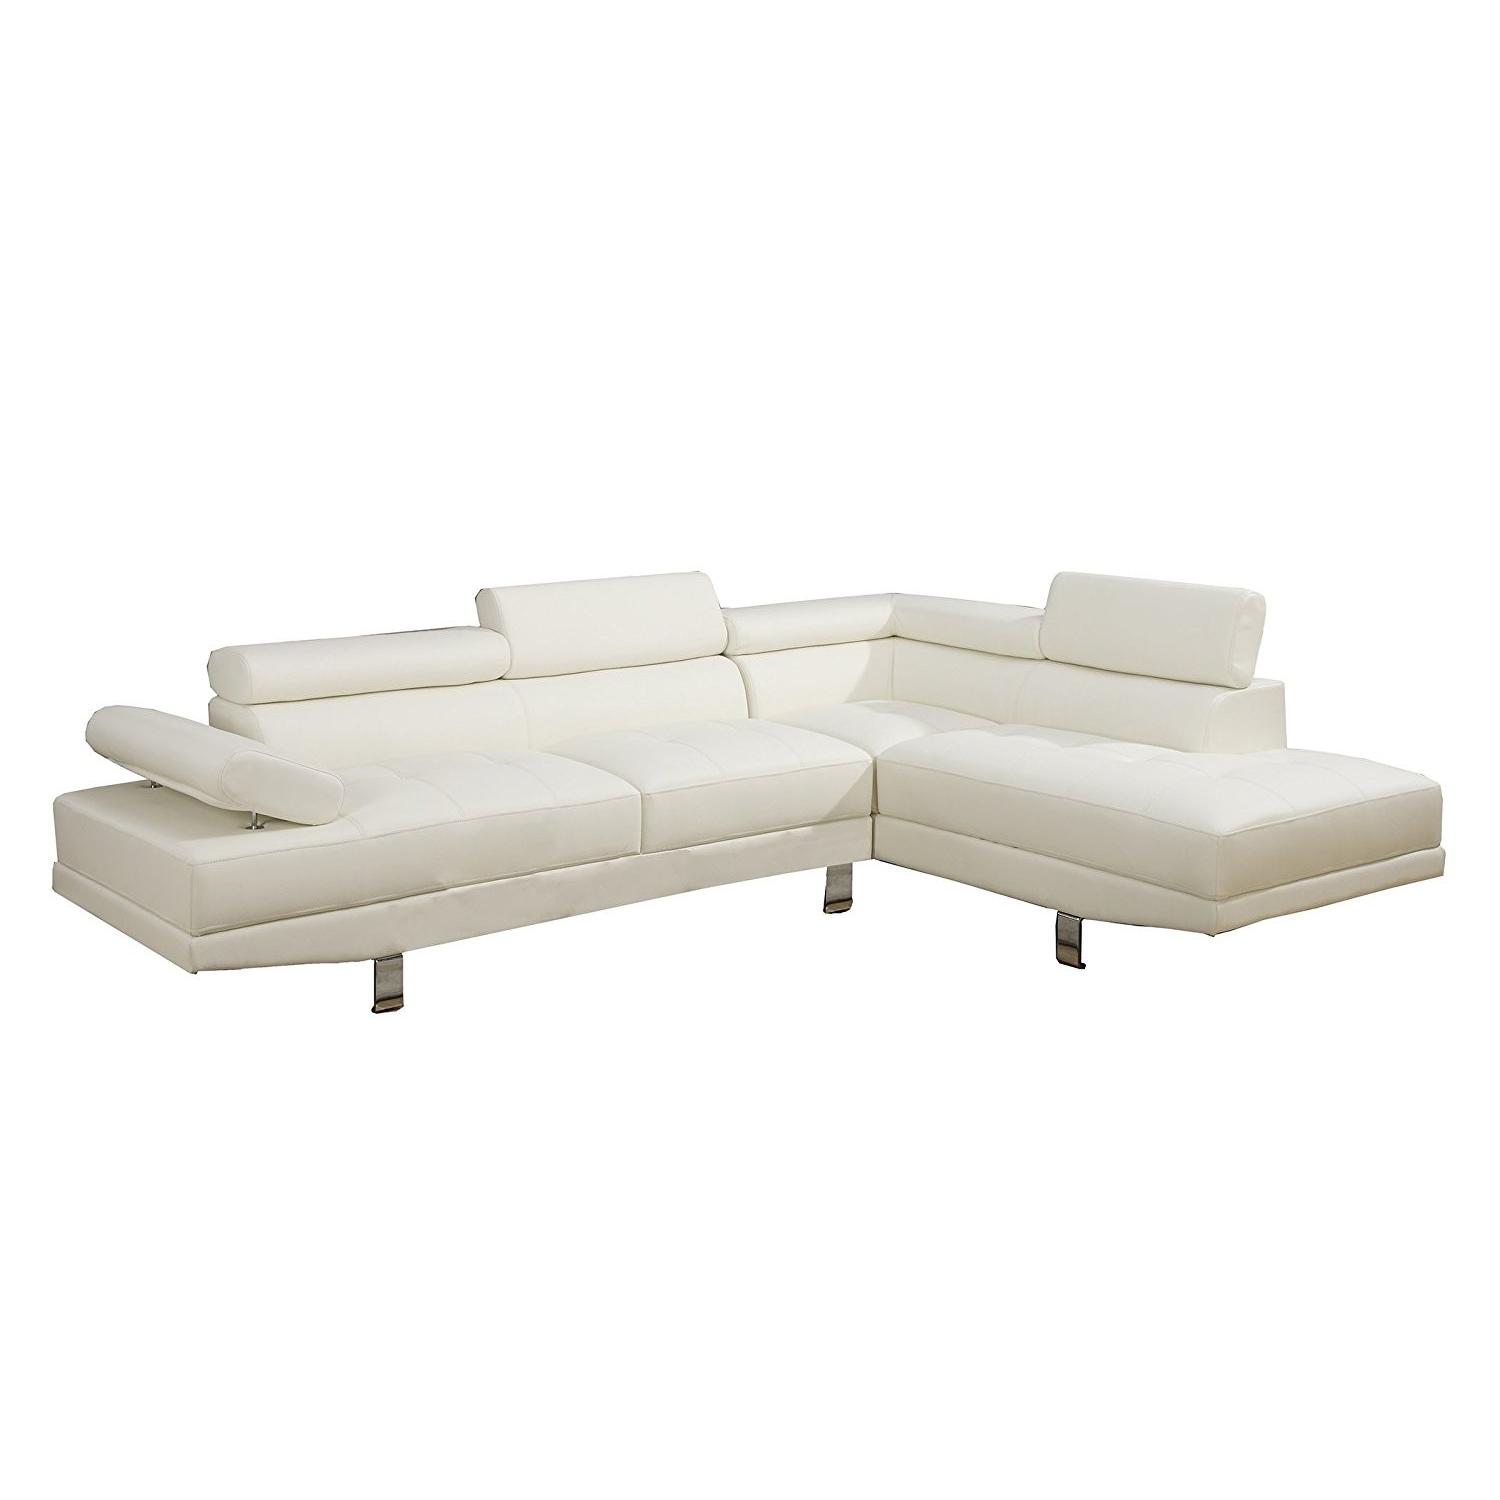 Modern White Faux Leather 2-Piece Sectional Sofa